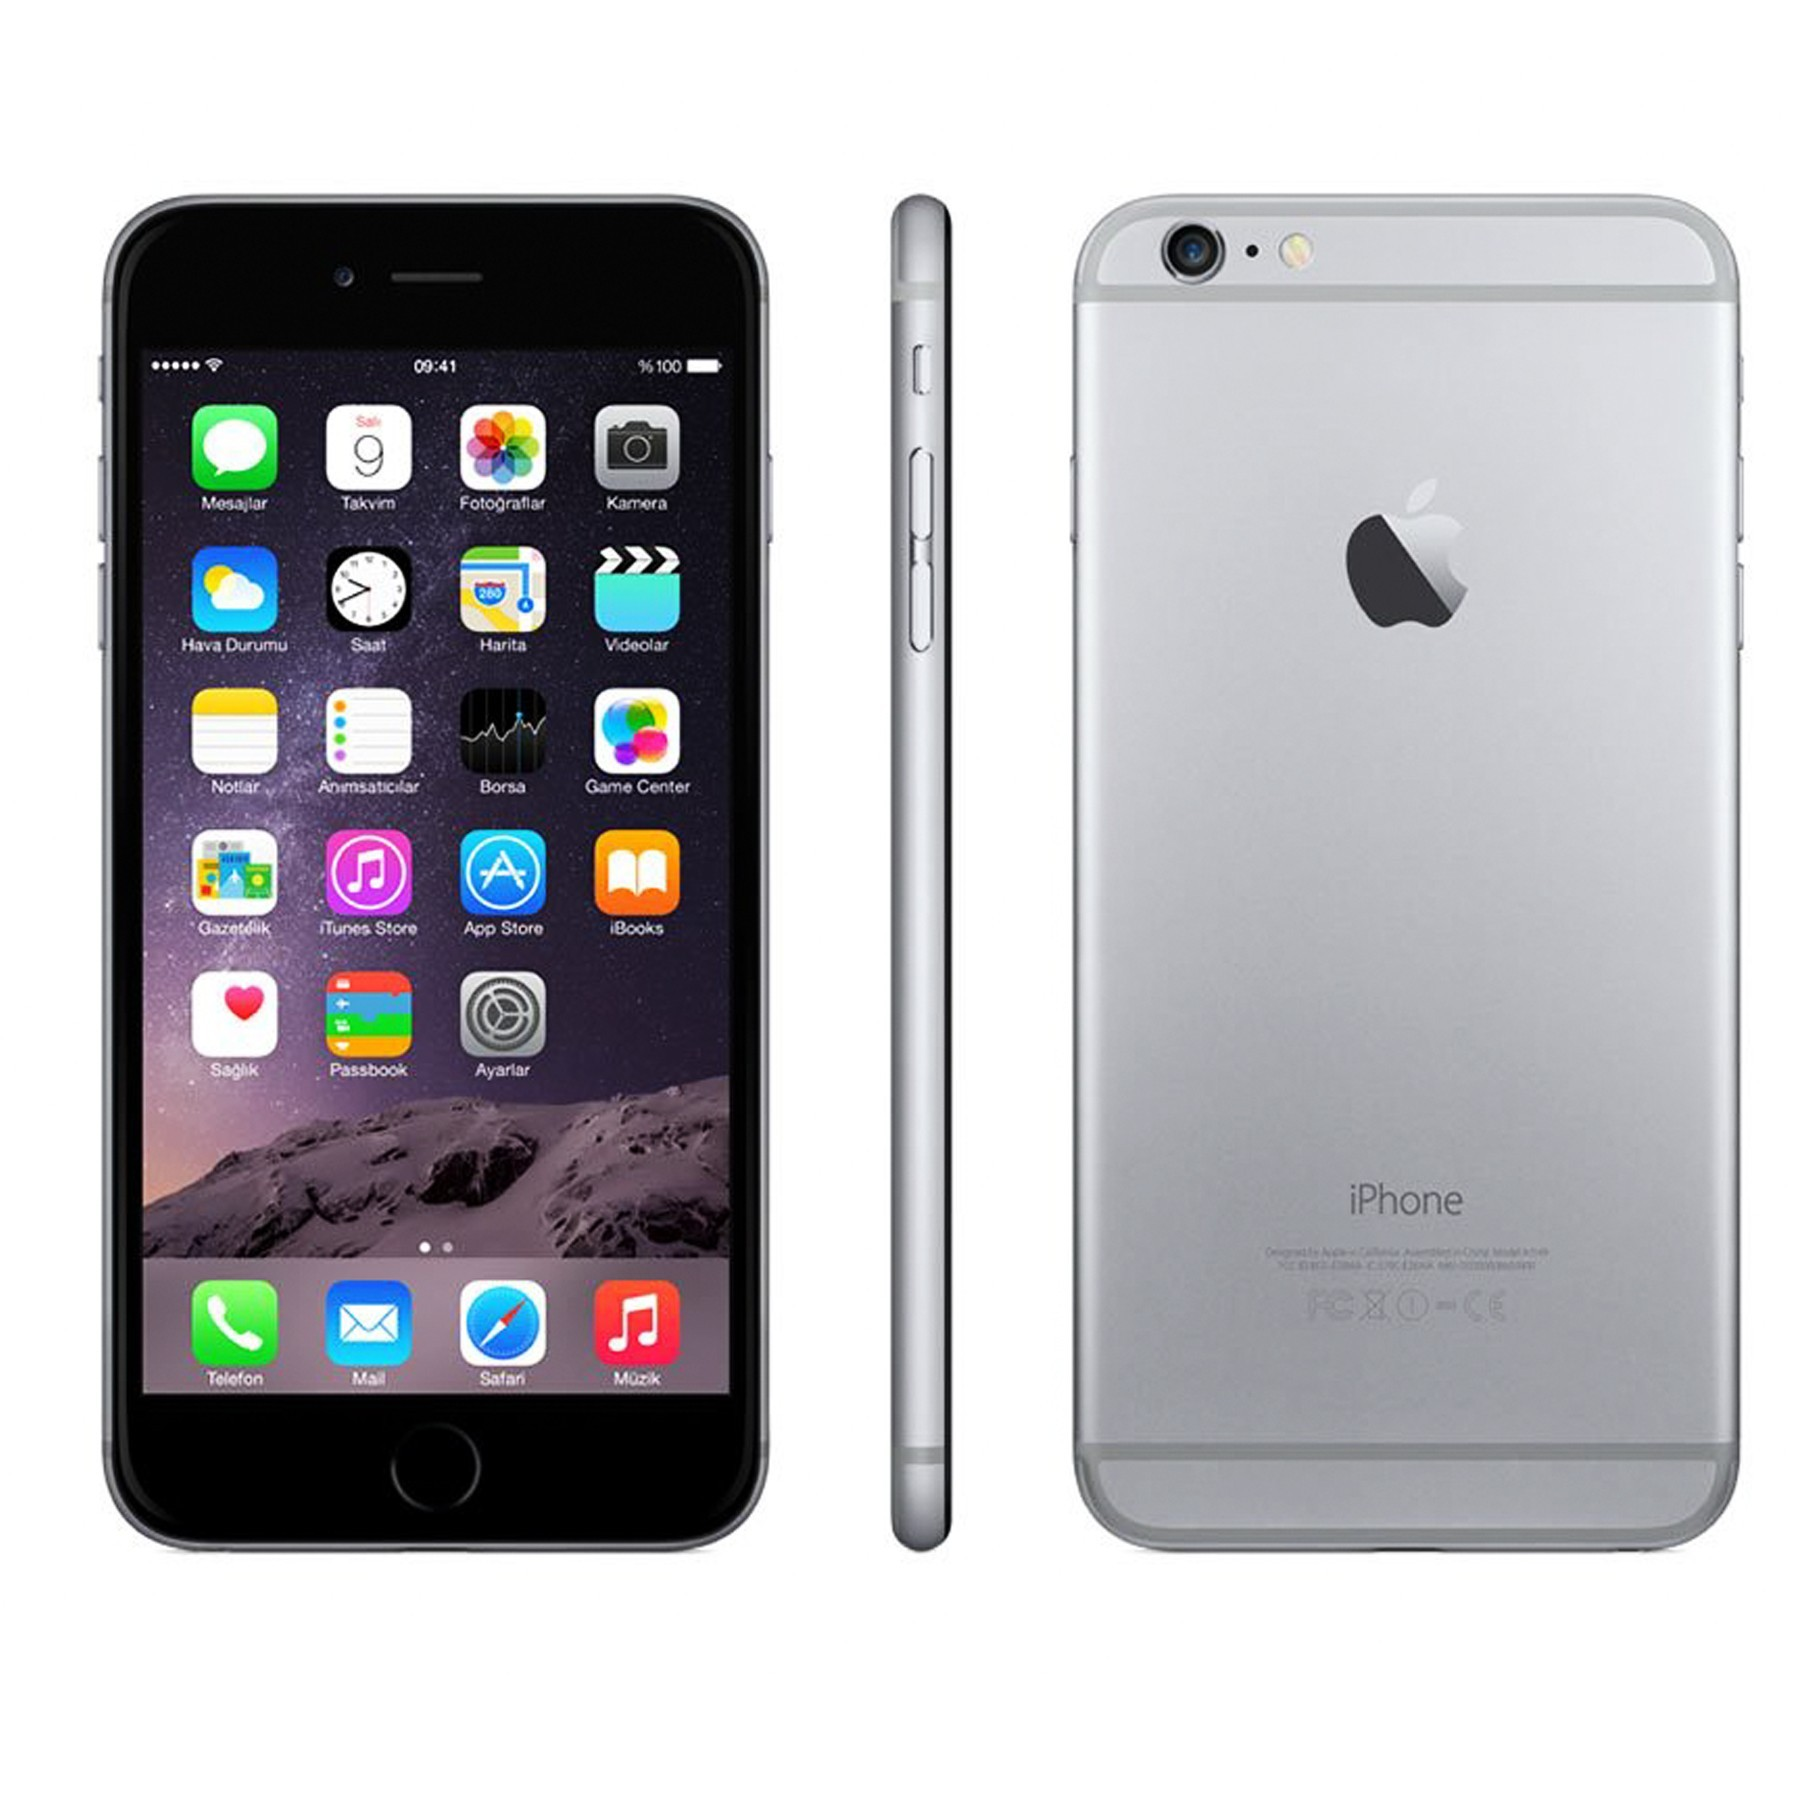 iPhone 6 Plus 64G Space Gray Ảnh số 38368052